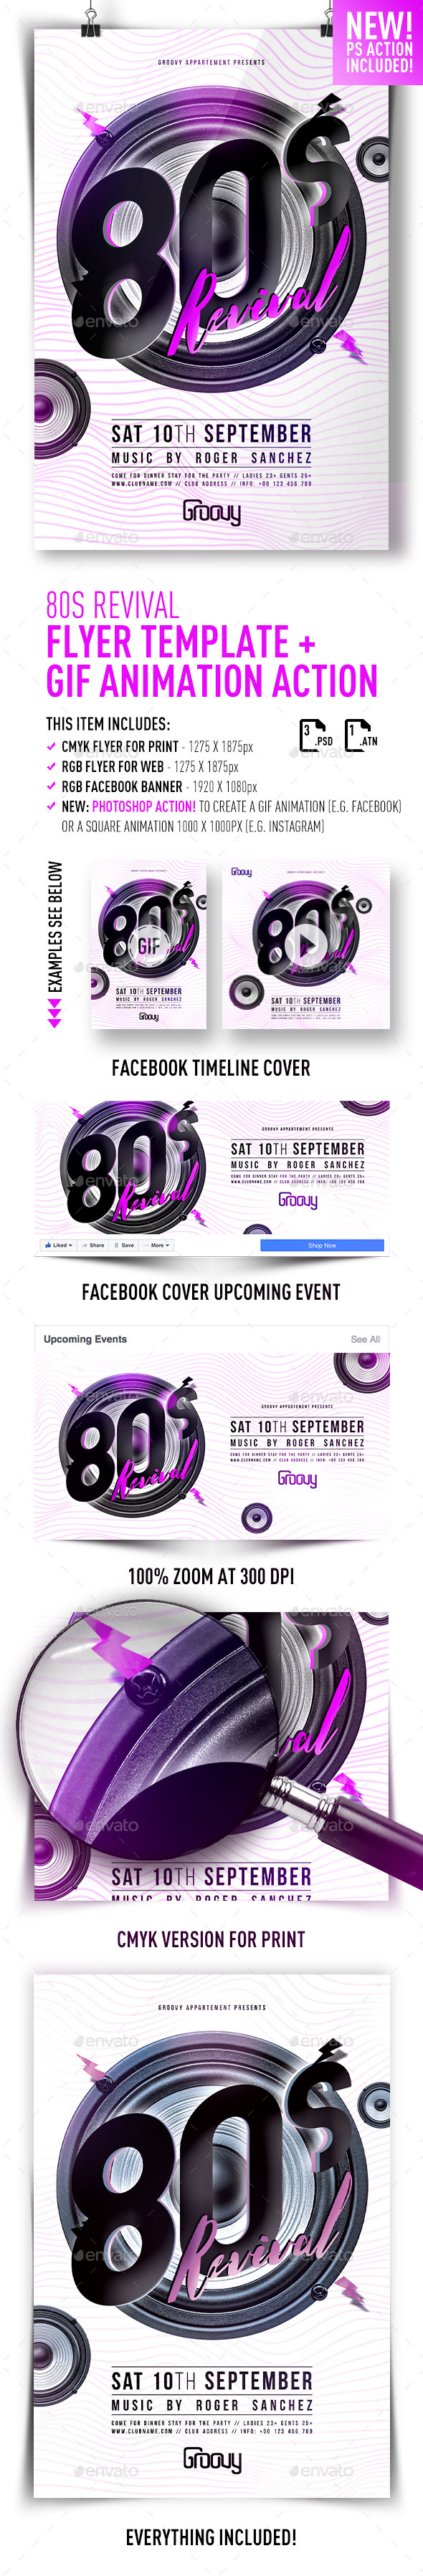 80s Revival Flyer Template + GIF Action - Print Templates